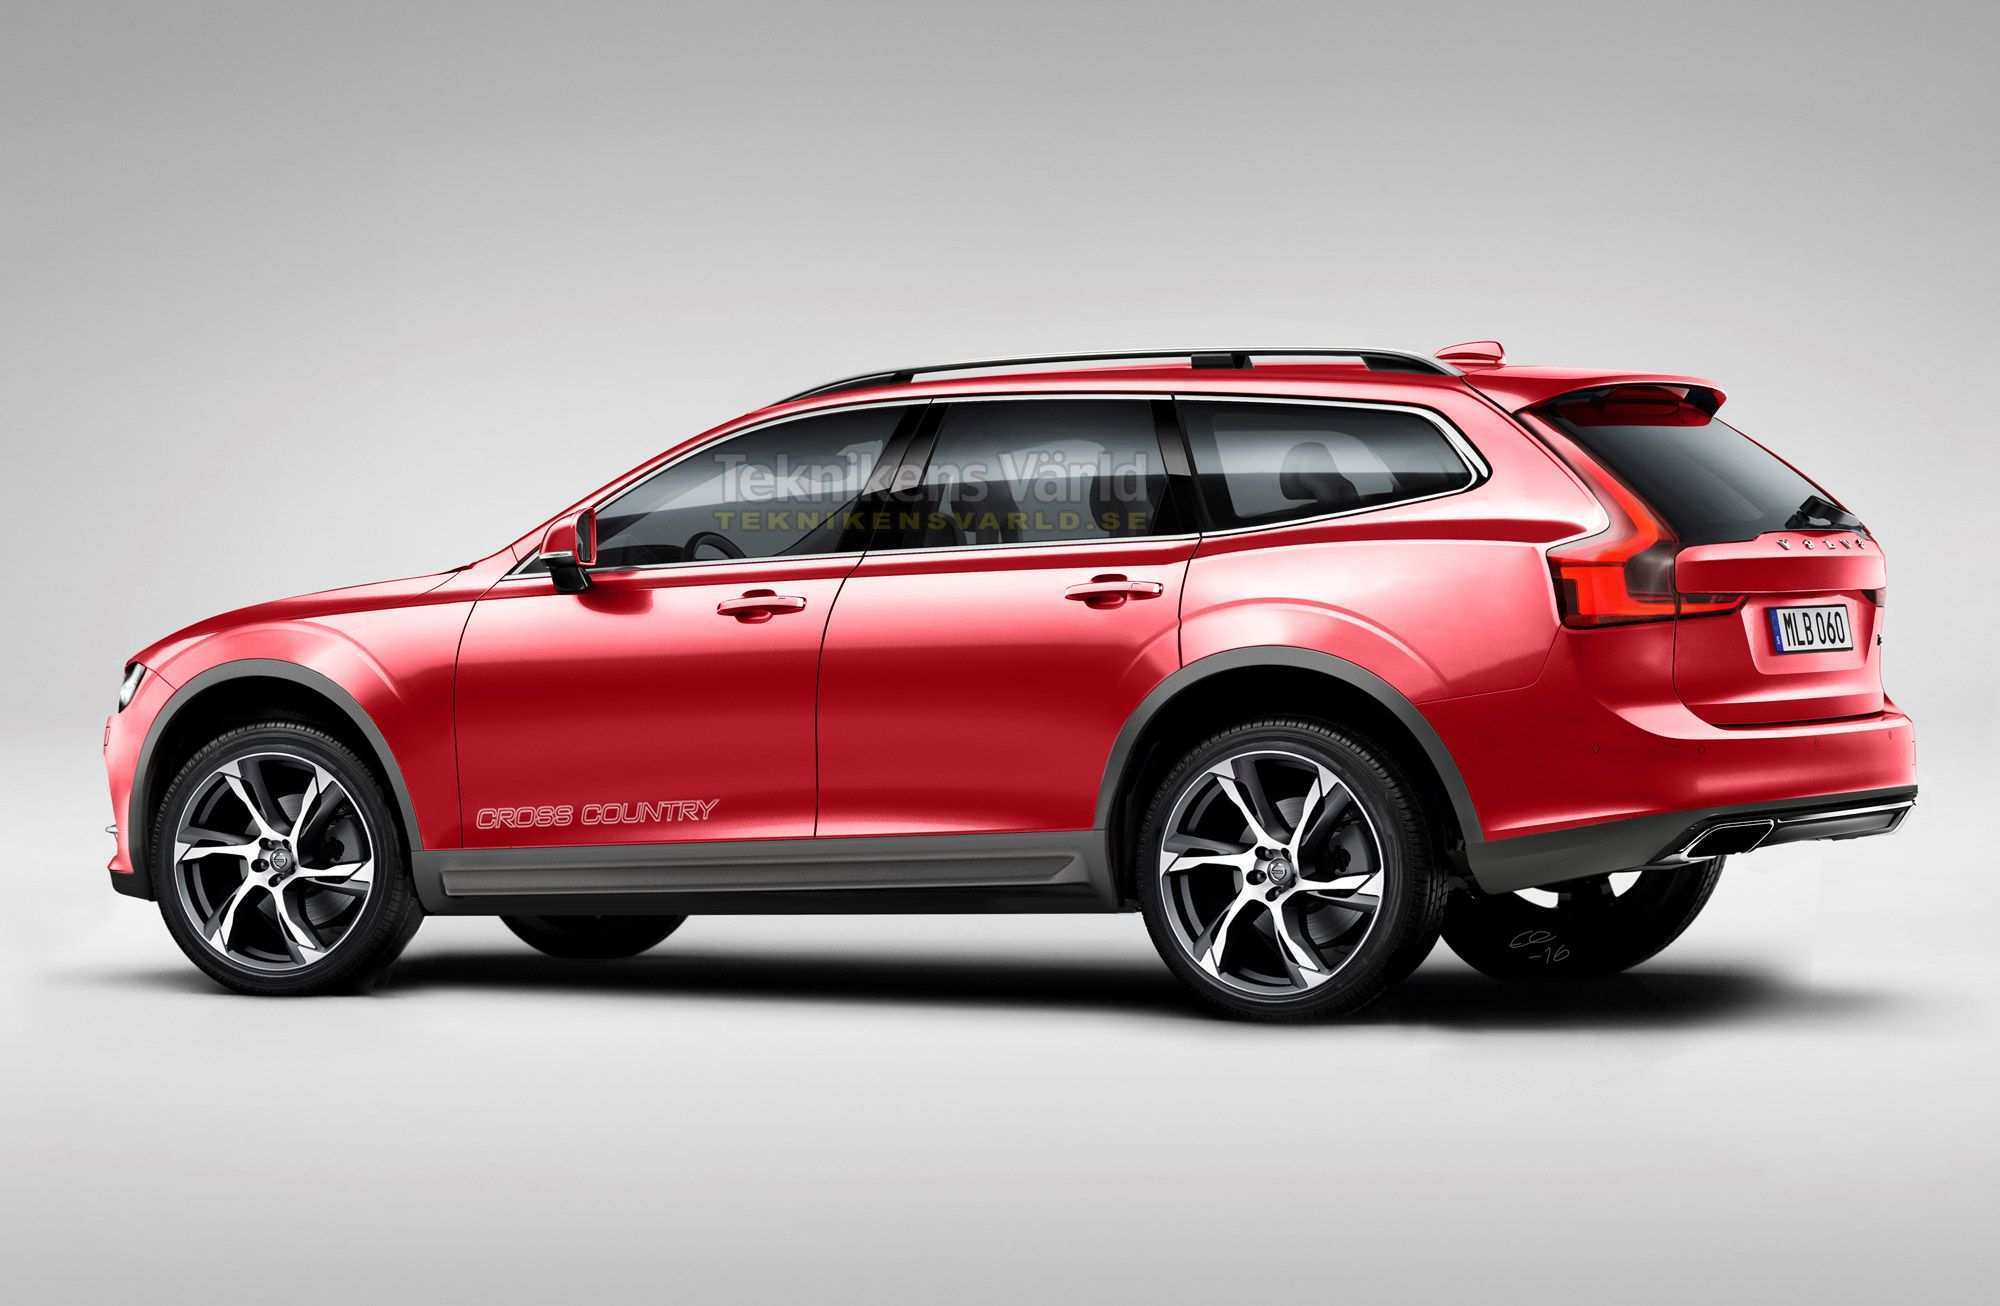 38 New Volvo 2019 V60 Cross Country Wallpaper